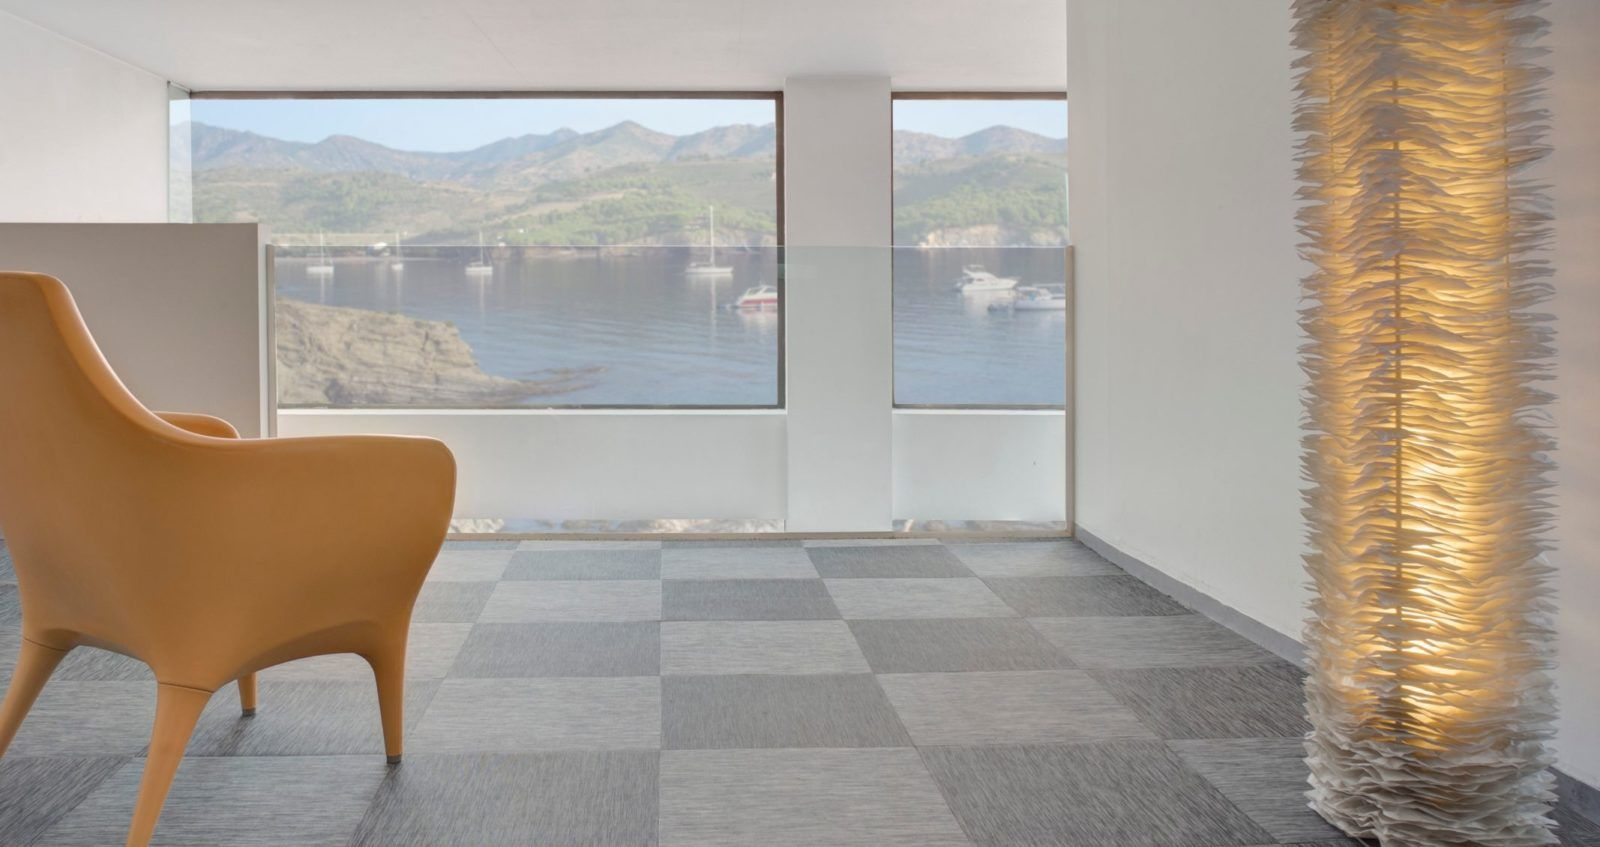 #Armstrong #commercial #flooring products include luxury flooring, homogeneous sheet vinyl, heterogeneous sheet vinyl, eco flooring, linoleum flooring, ...